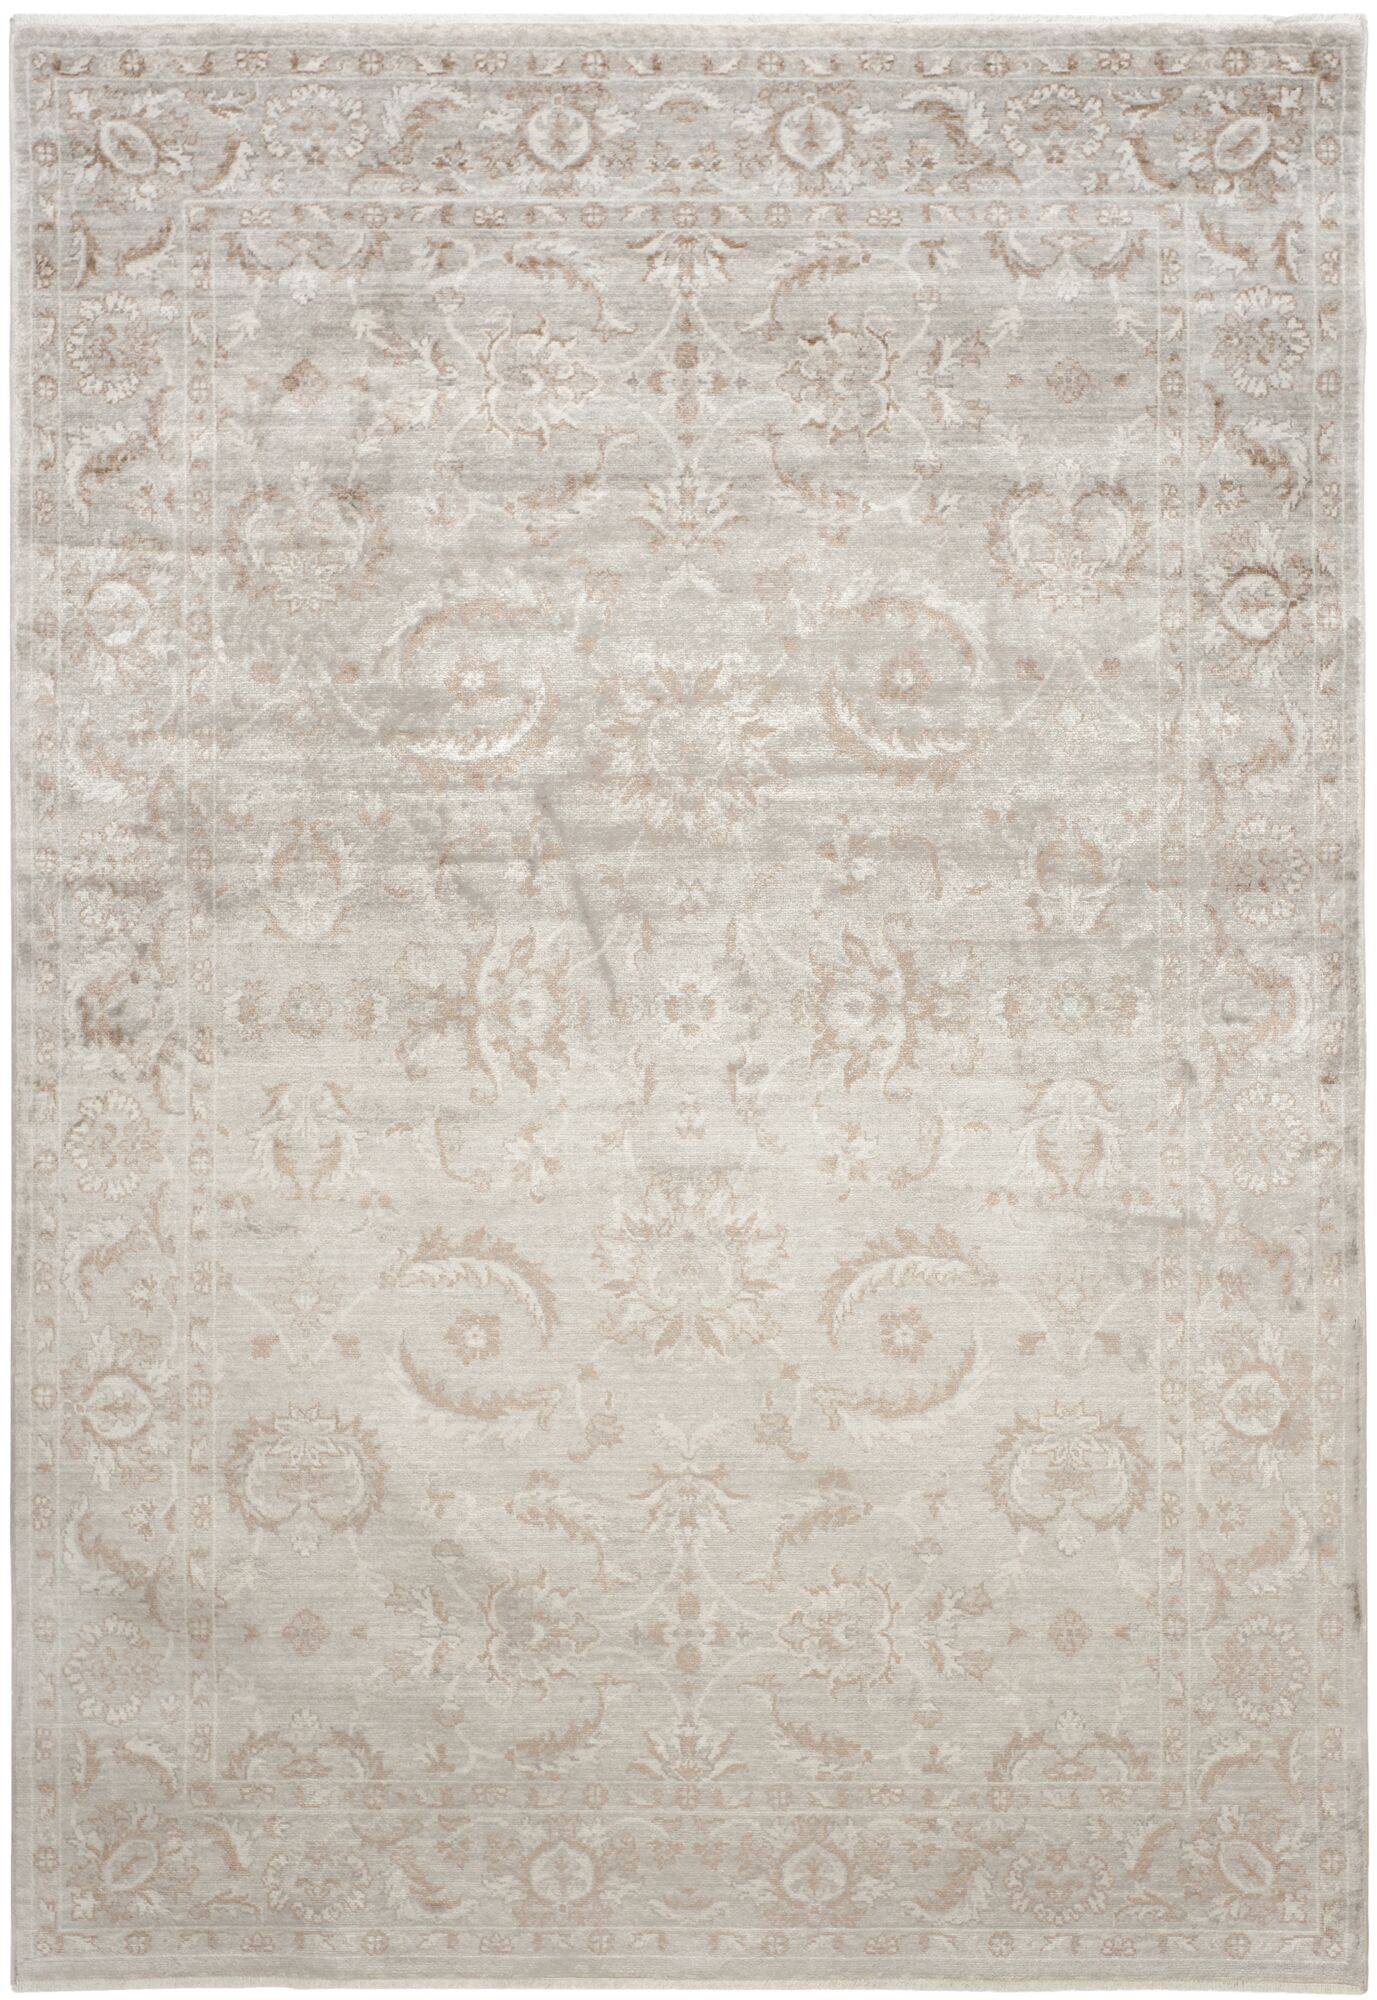 Prades Tibetan Hand Loomed Gray/Ivory Area Rug Rug Size: Rectangle 8' x 10'